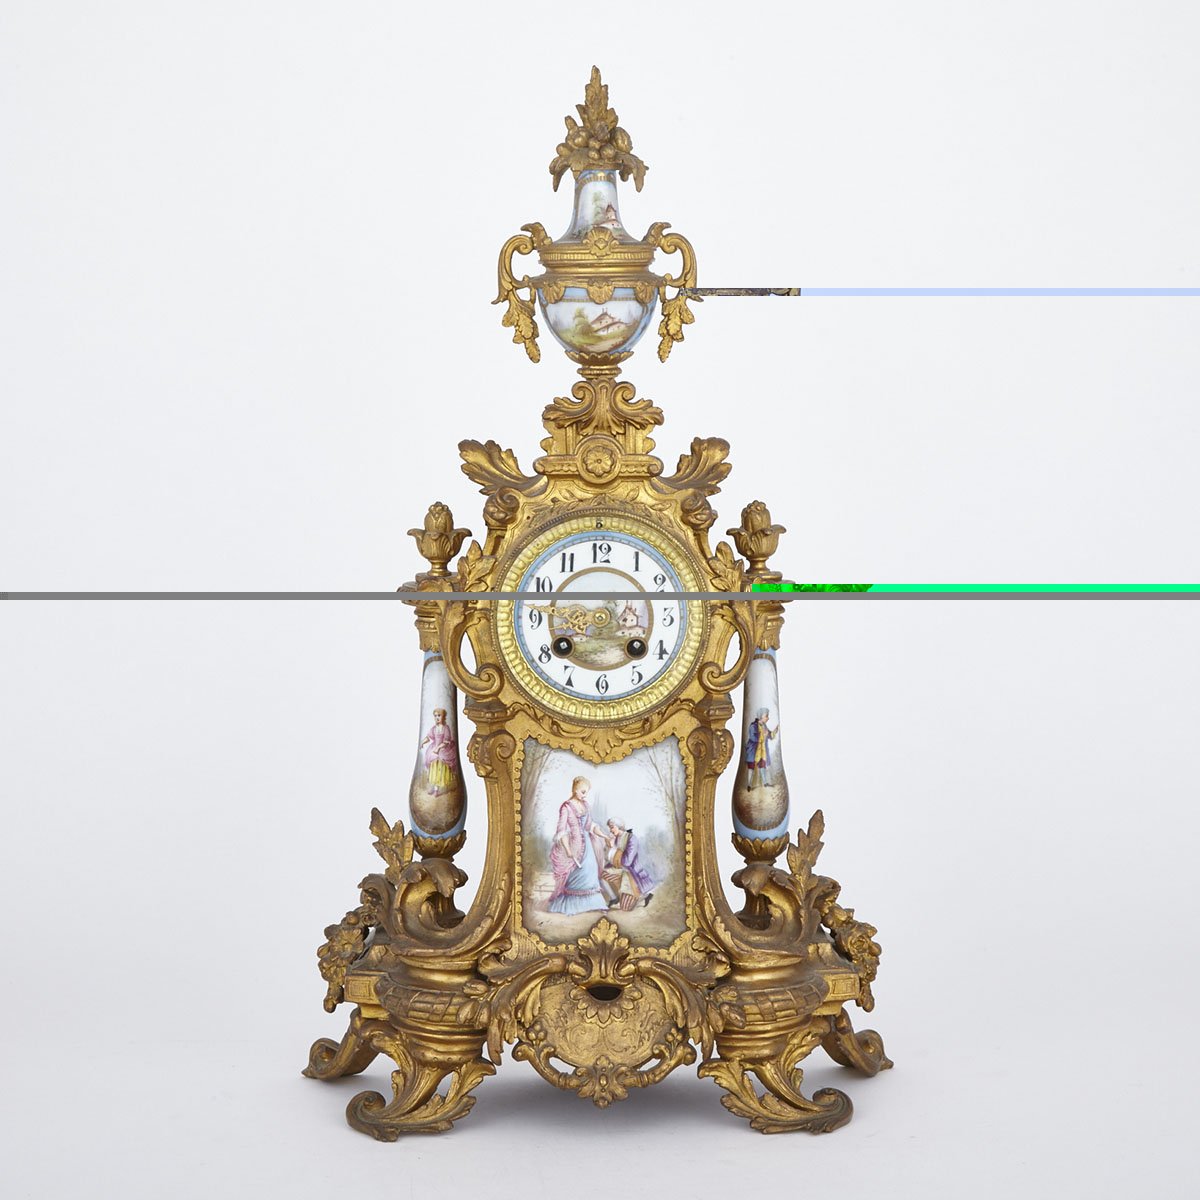 Napoleon III Sevres Style Porcelain Mounted Gilt Metal Mantel Clock, French, c.1870